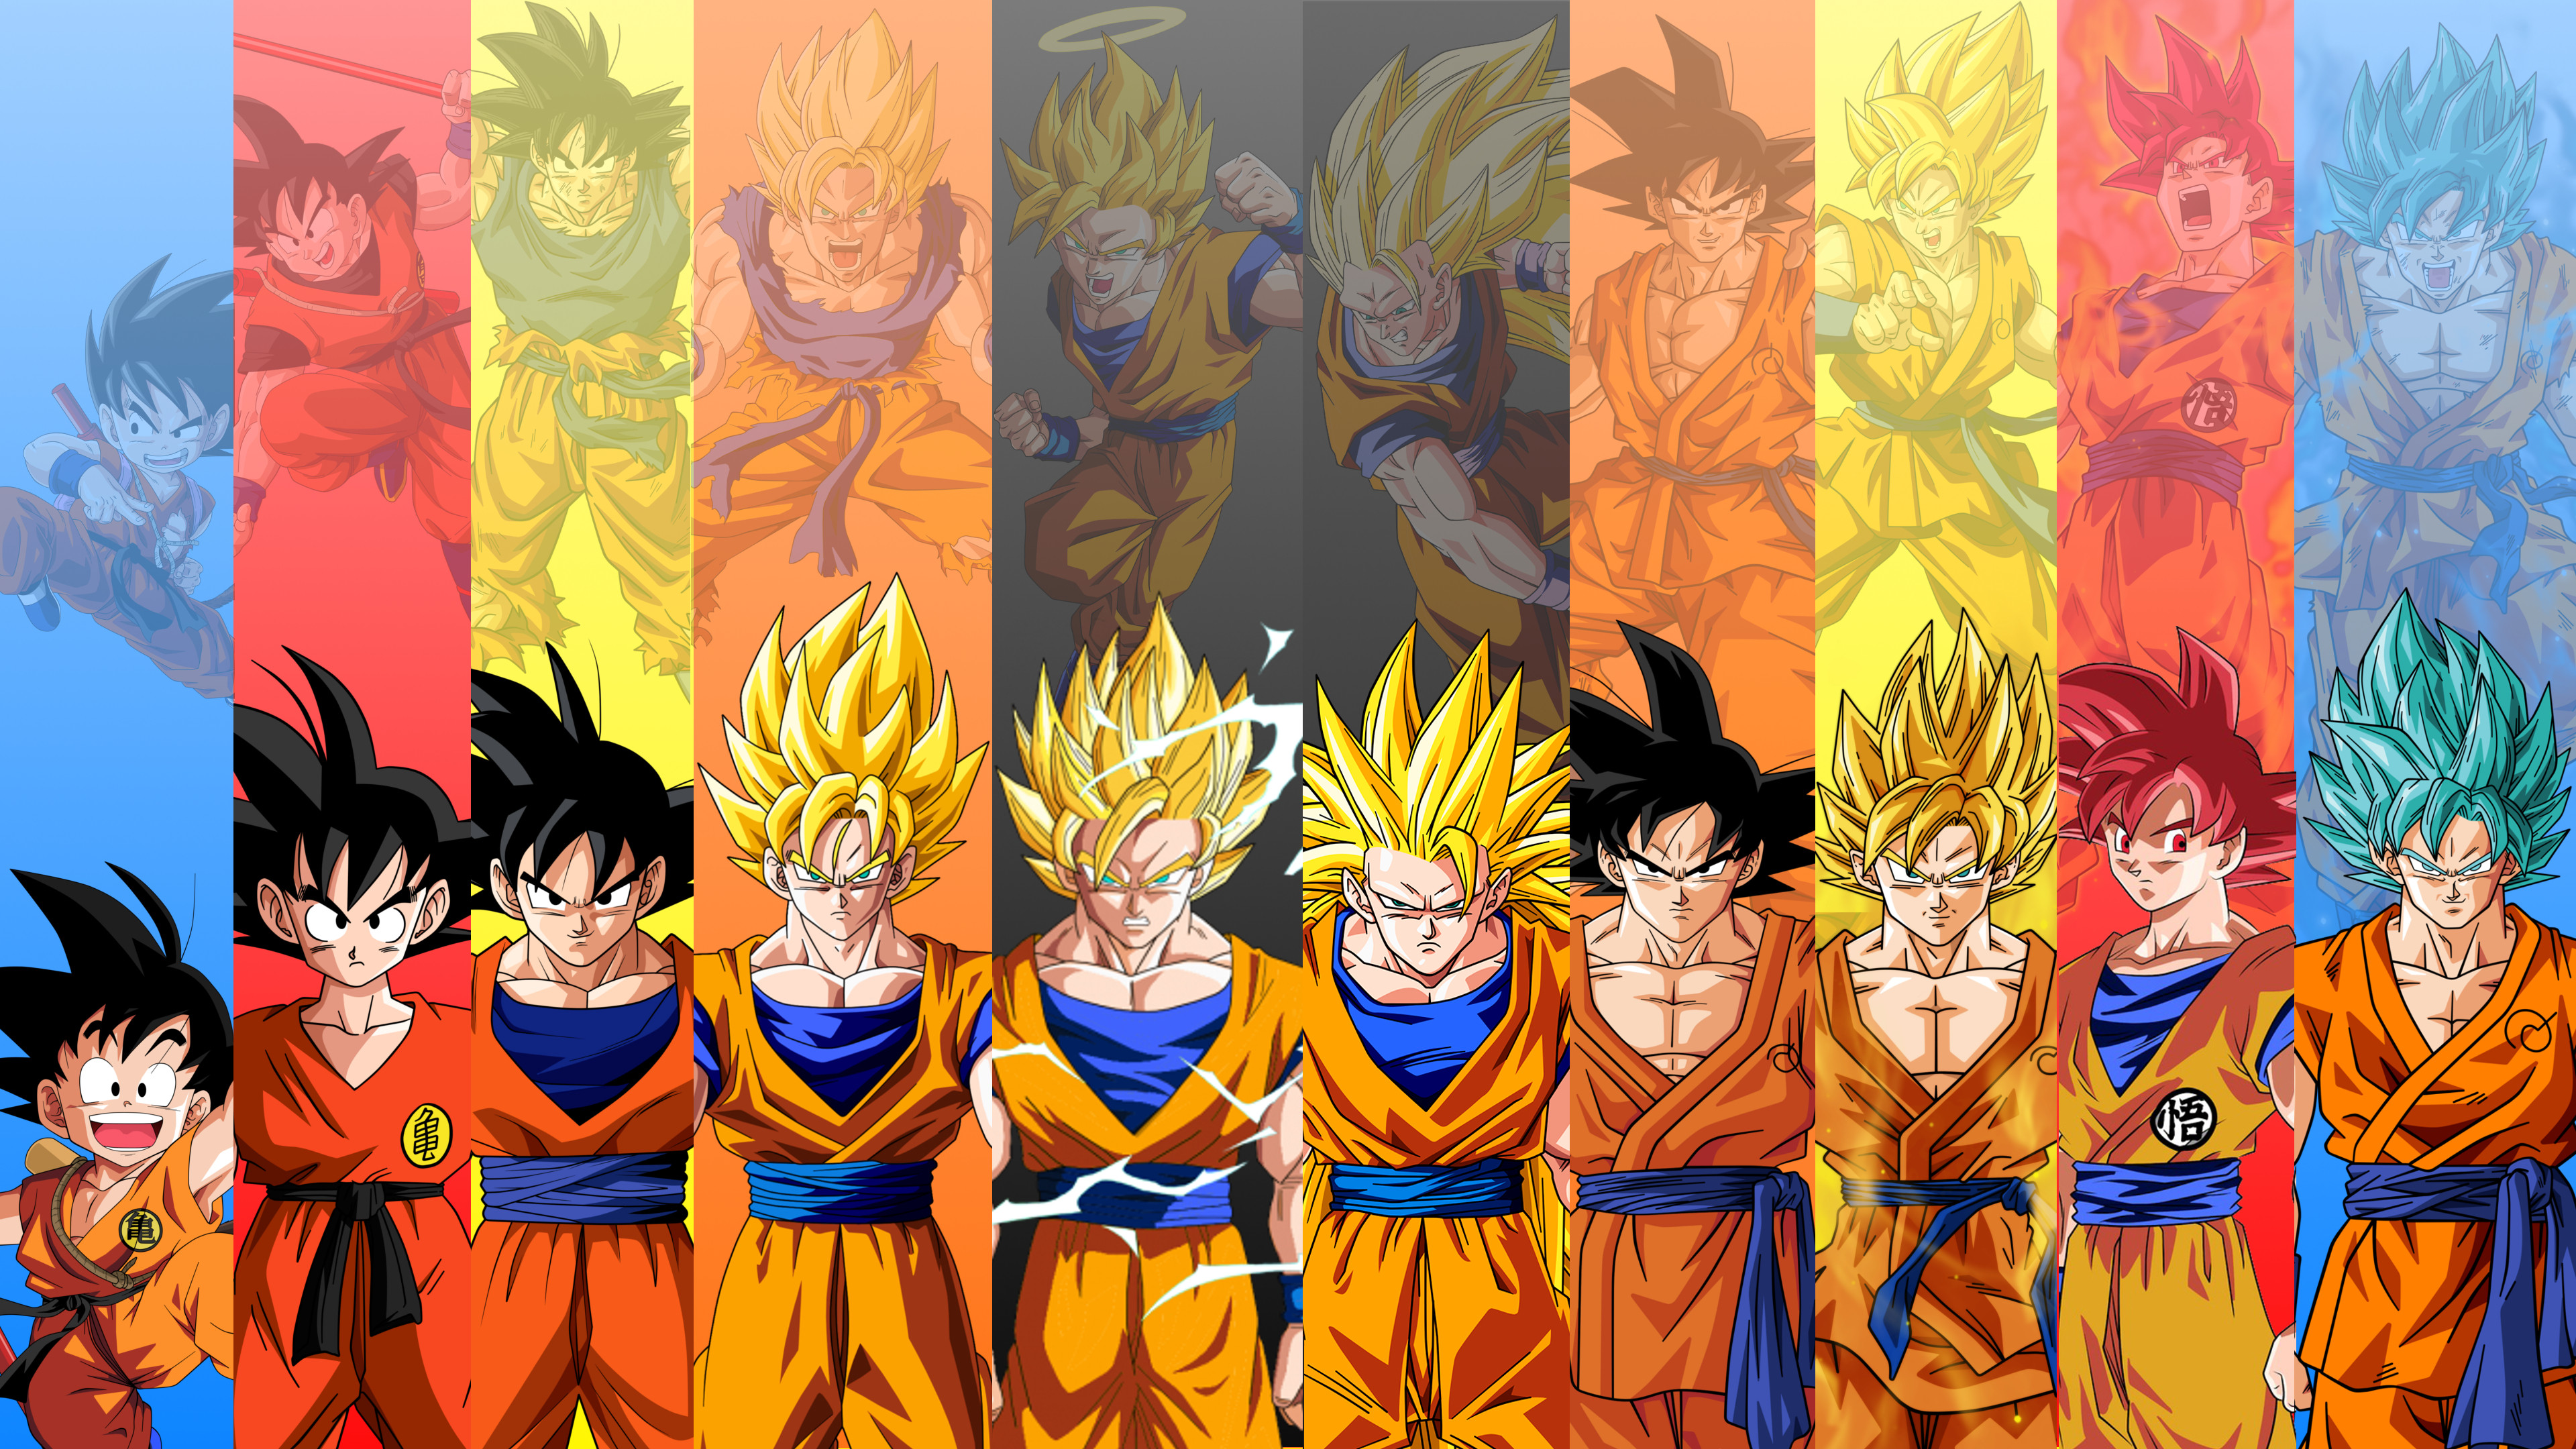 Goku Evolution Dragon Ball Wallpaper 1339 Wallpaper 3840x2160